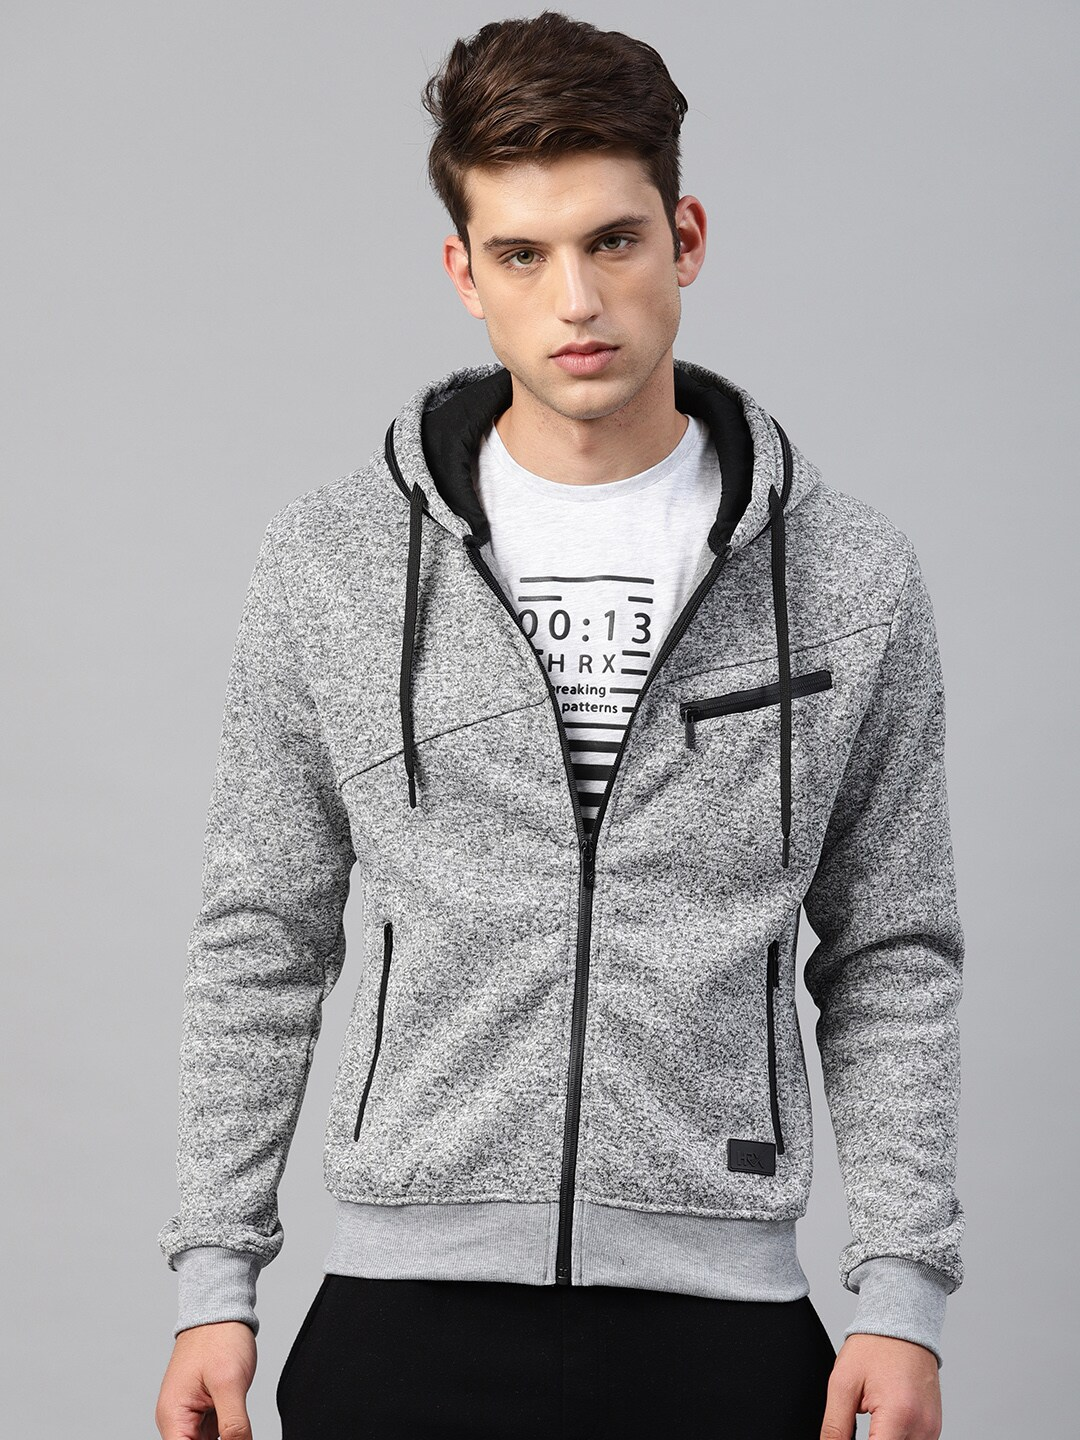 ea07c375a98 Sweatshirts For Men - Buy Mens Sweatshirts Online India